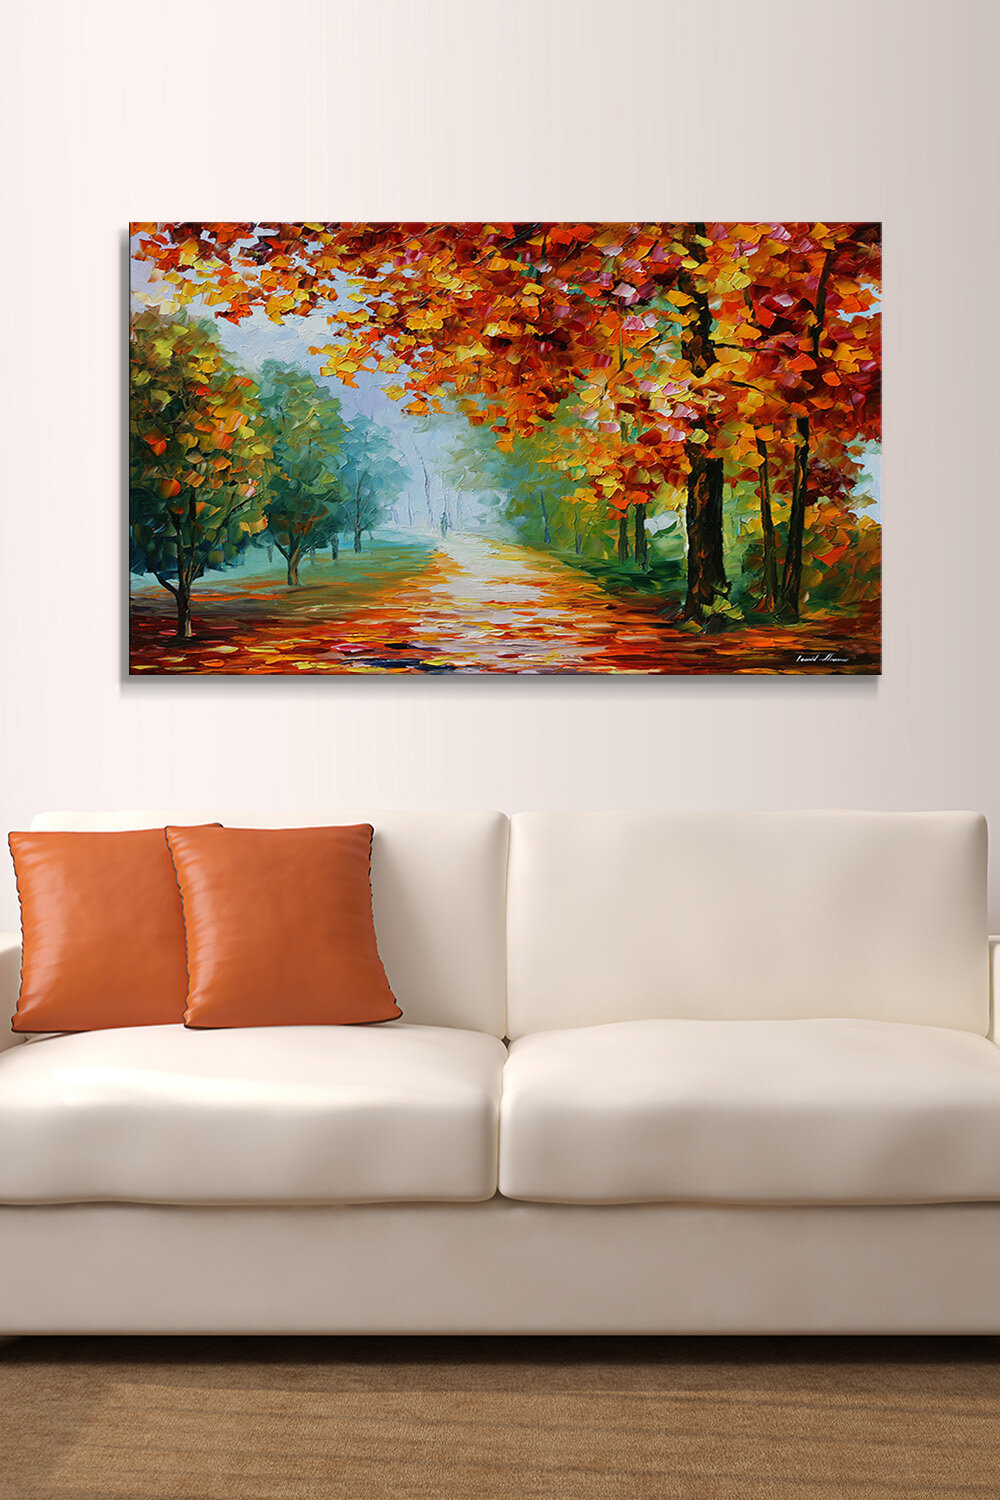 Pictureperfectinternational Evanescing Sight By Leonid Afremov Painting Print On Wrapped Canvas Wayfair